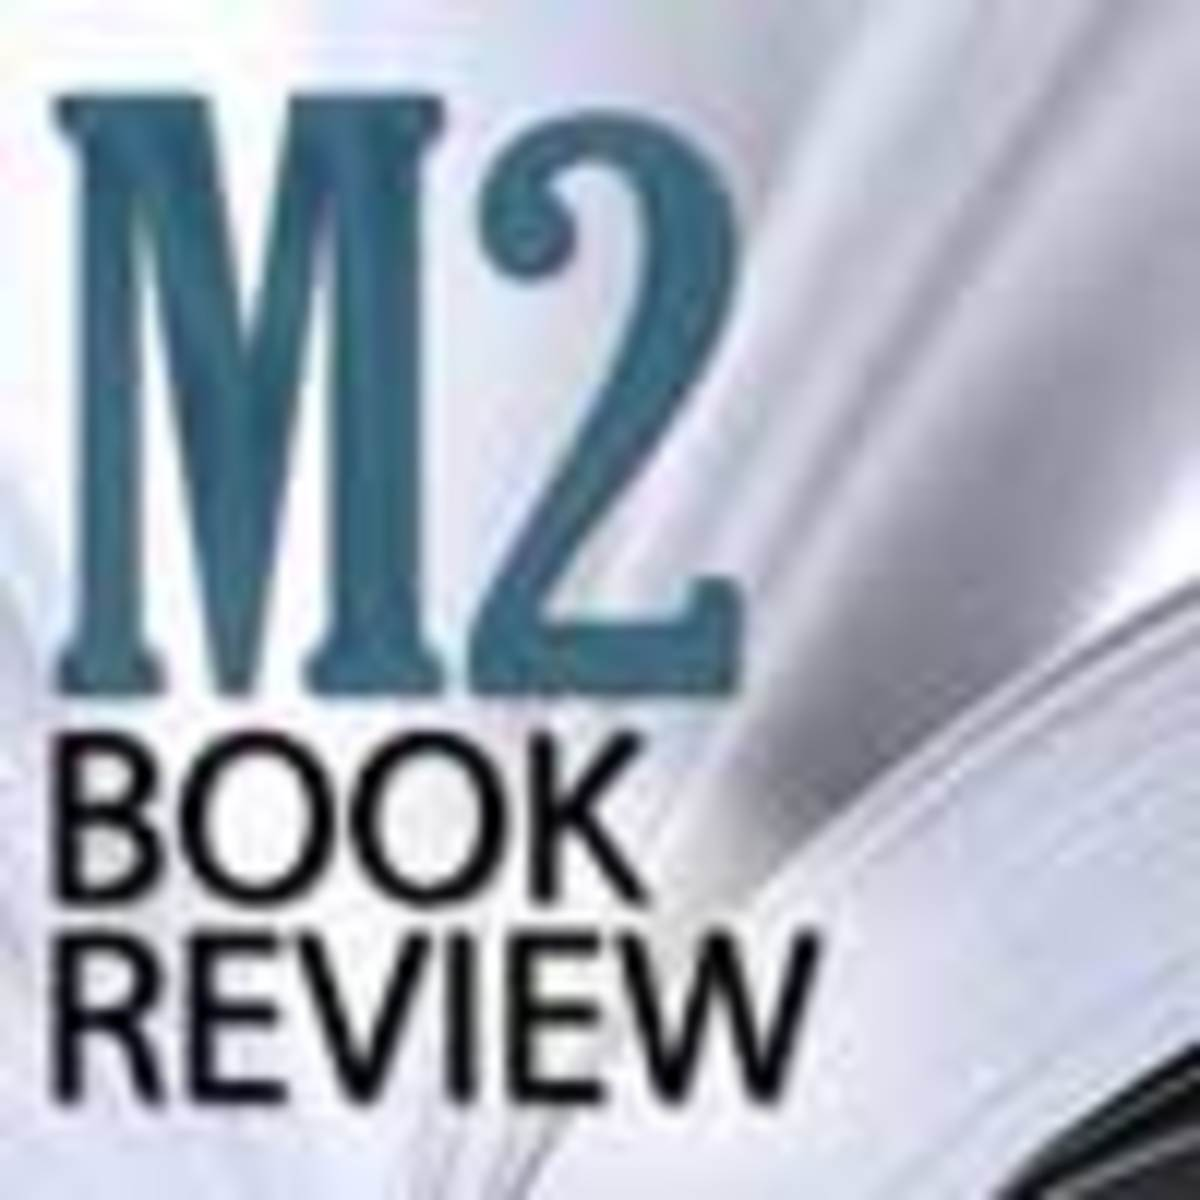 Click here to read more Miller-McCune book reviews.